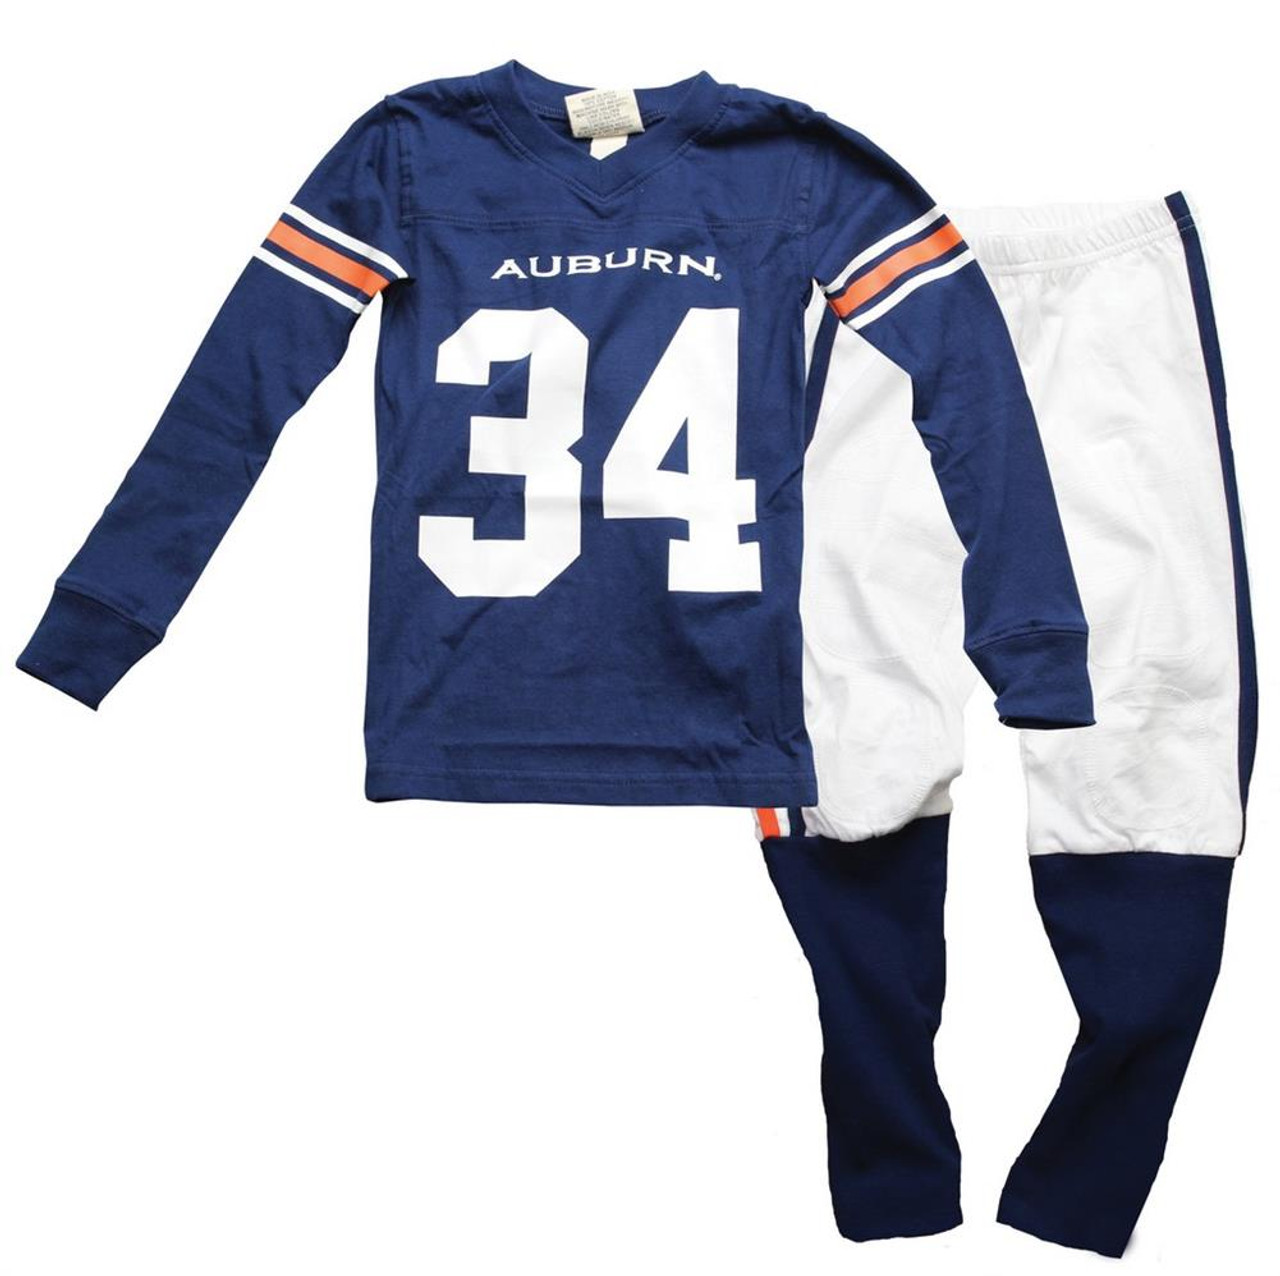 Boys Auburn University Tigers Pajamas LS Football Jersey PJ Set